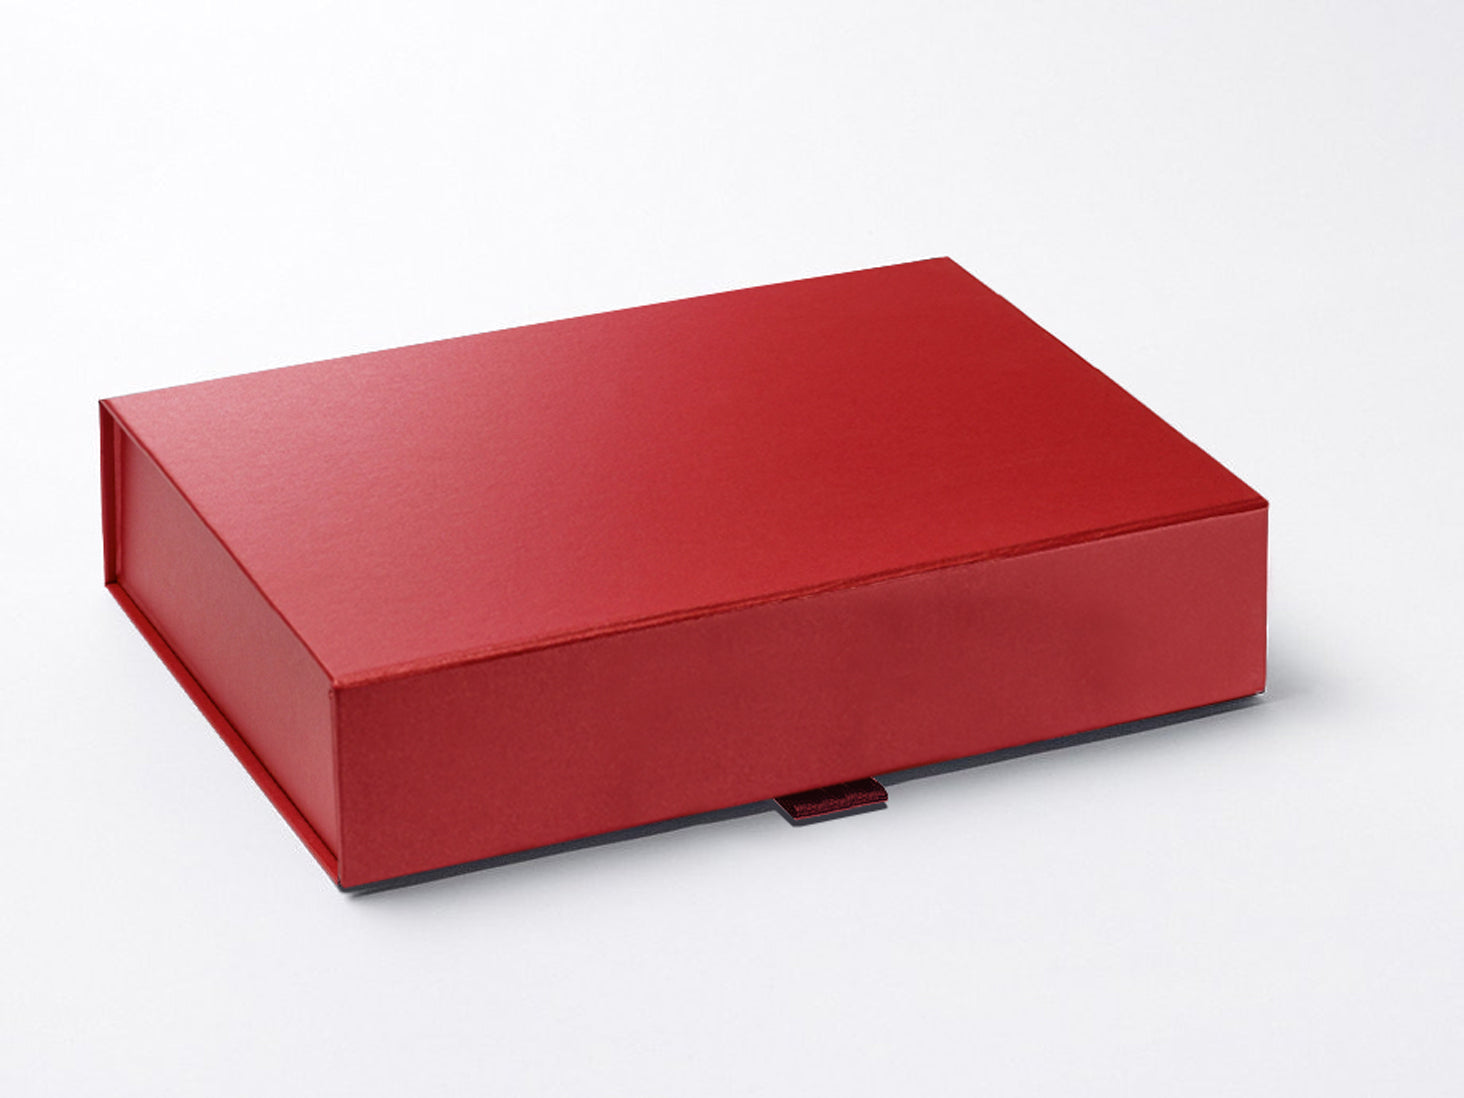 Pearl Red A Shallow Gift Boxes Available Wholesale From Foldabox Usa